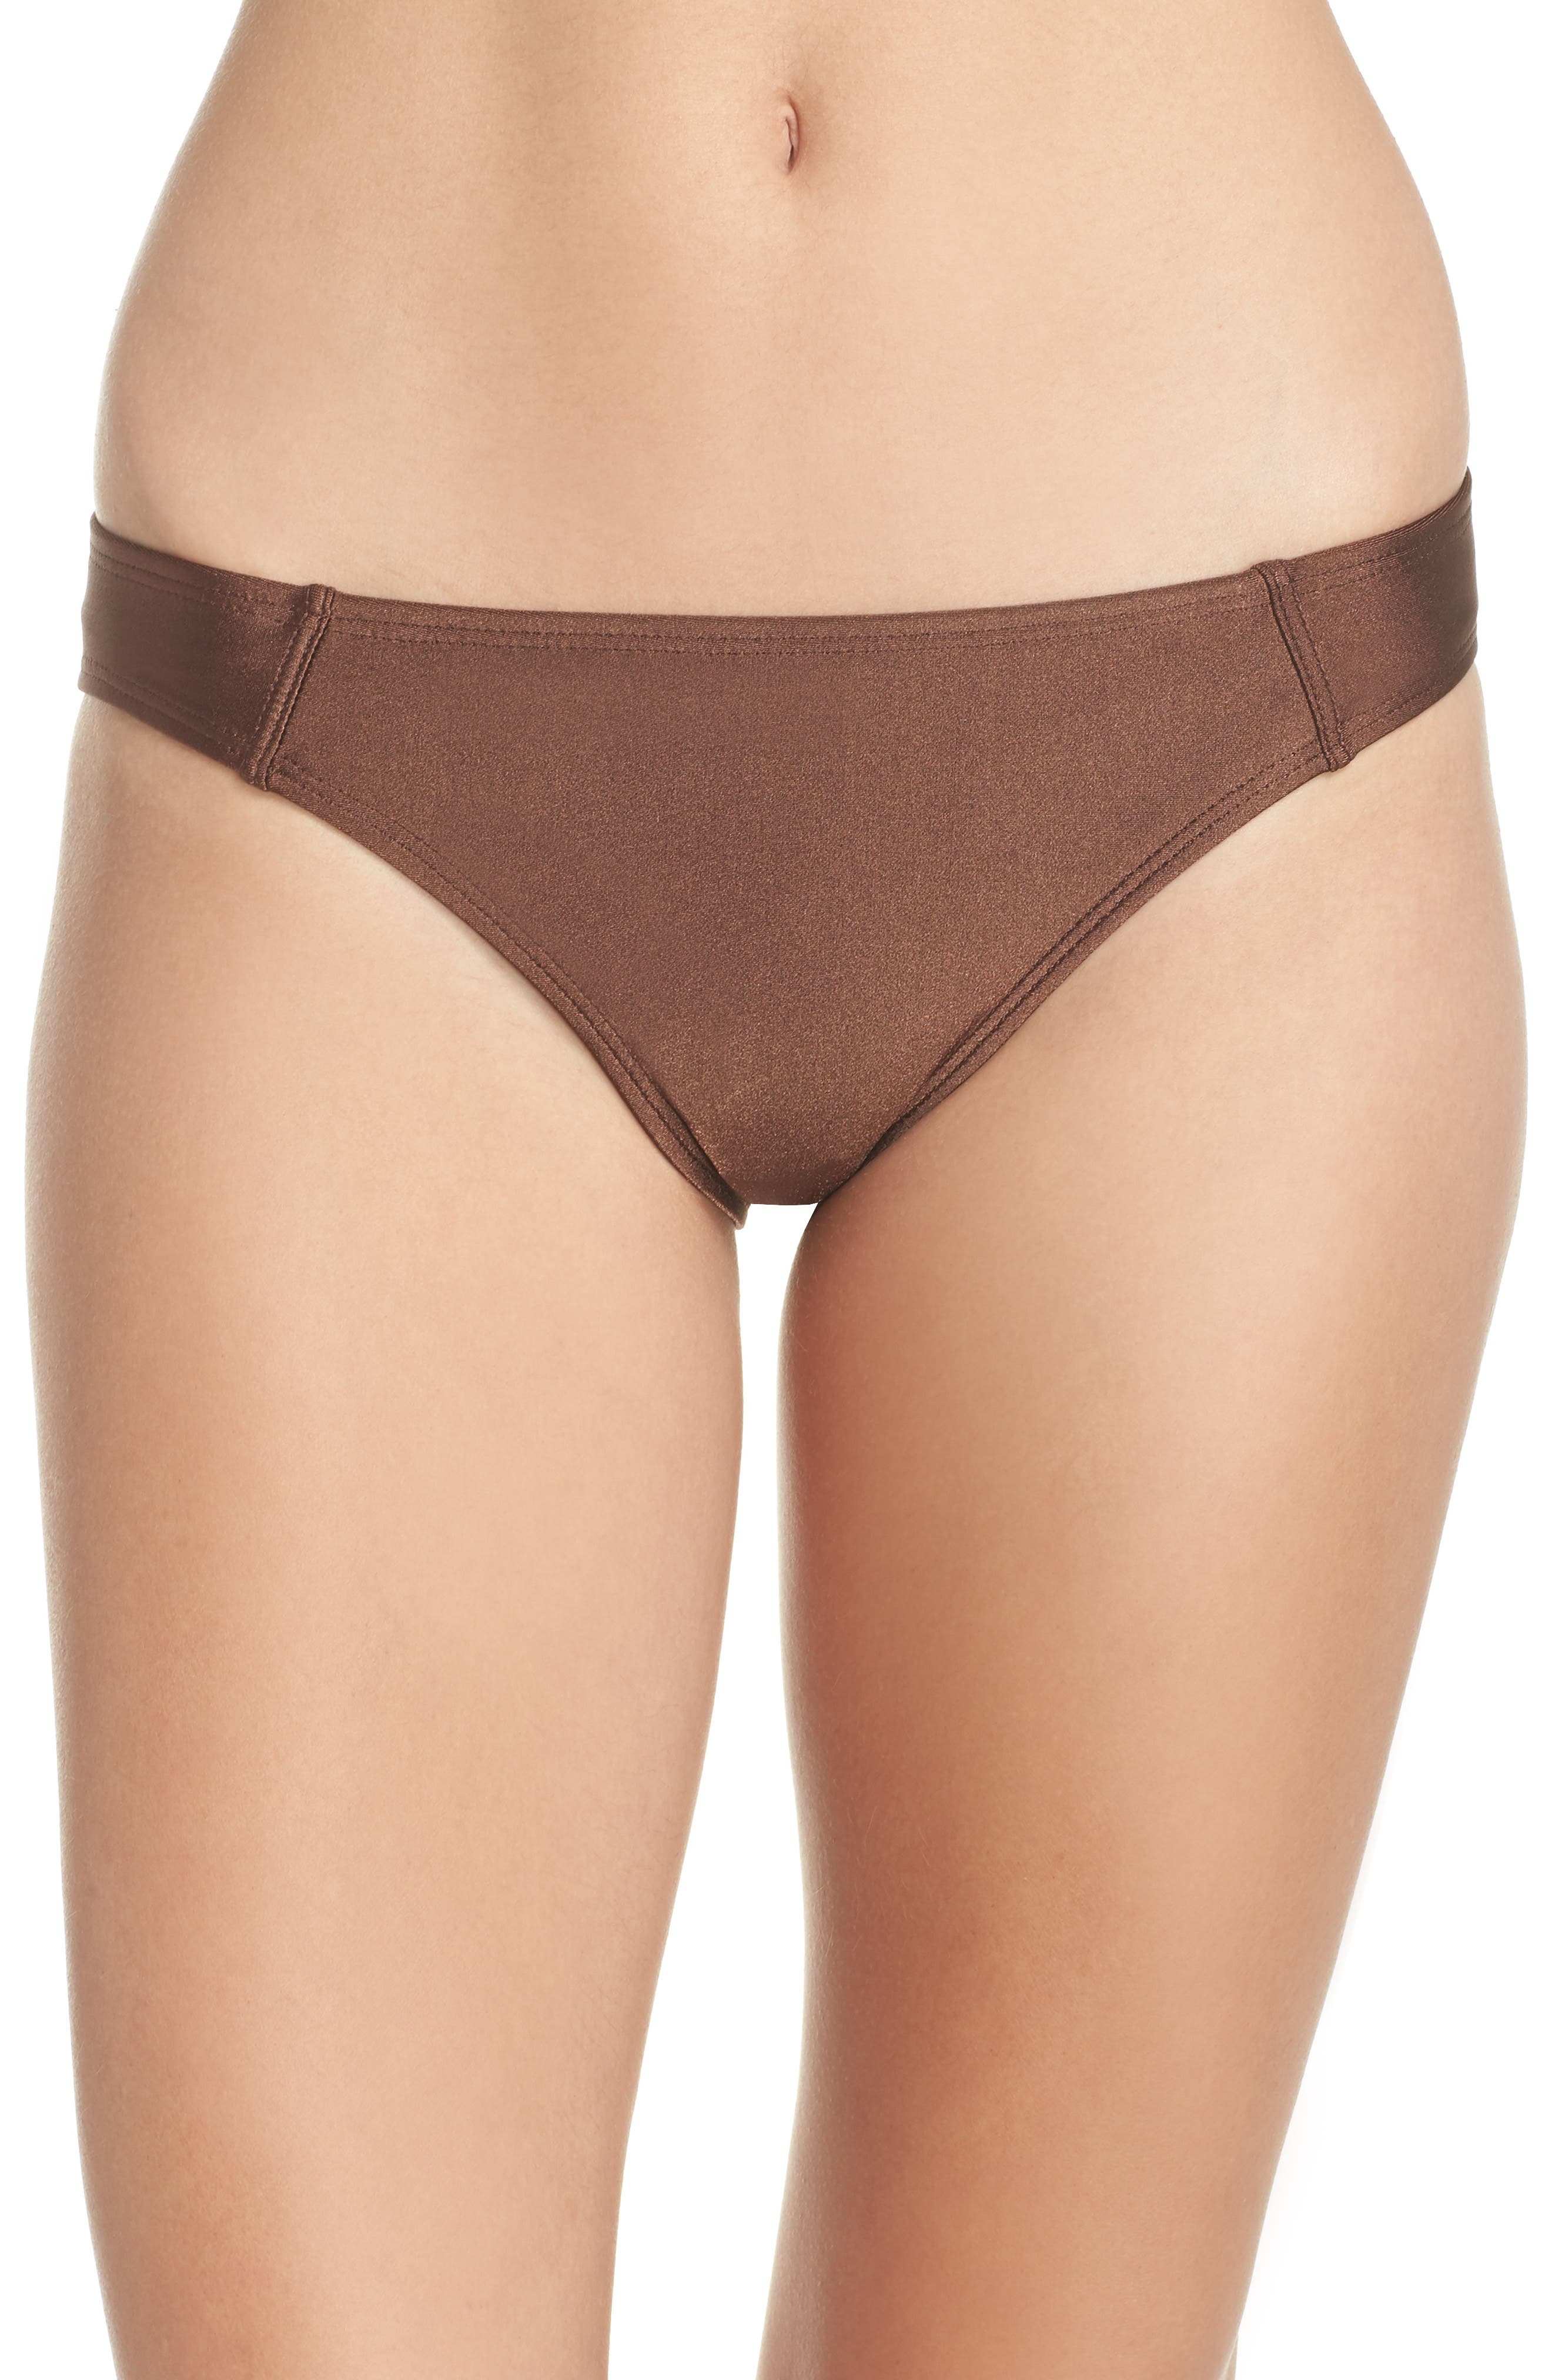 Banded Hipster Bikini Bottoms,                         Main,                         color, Chocolate Glint